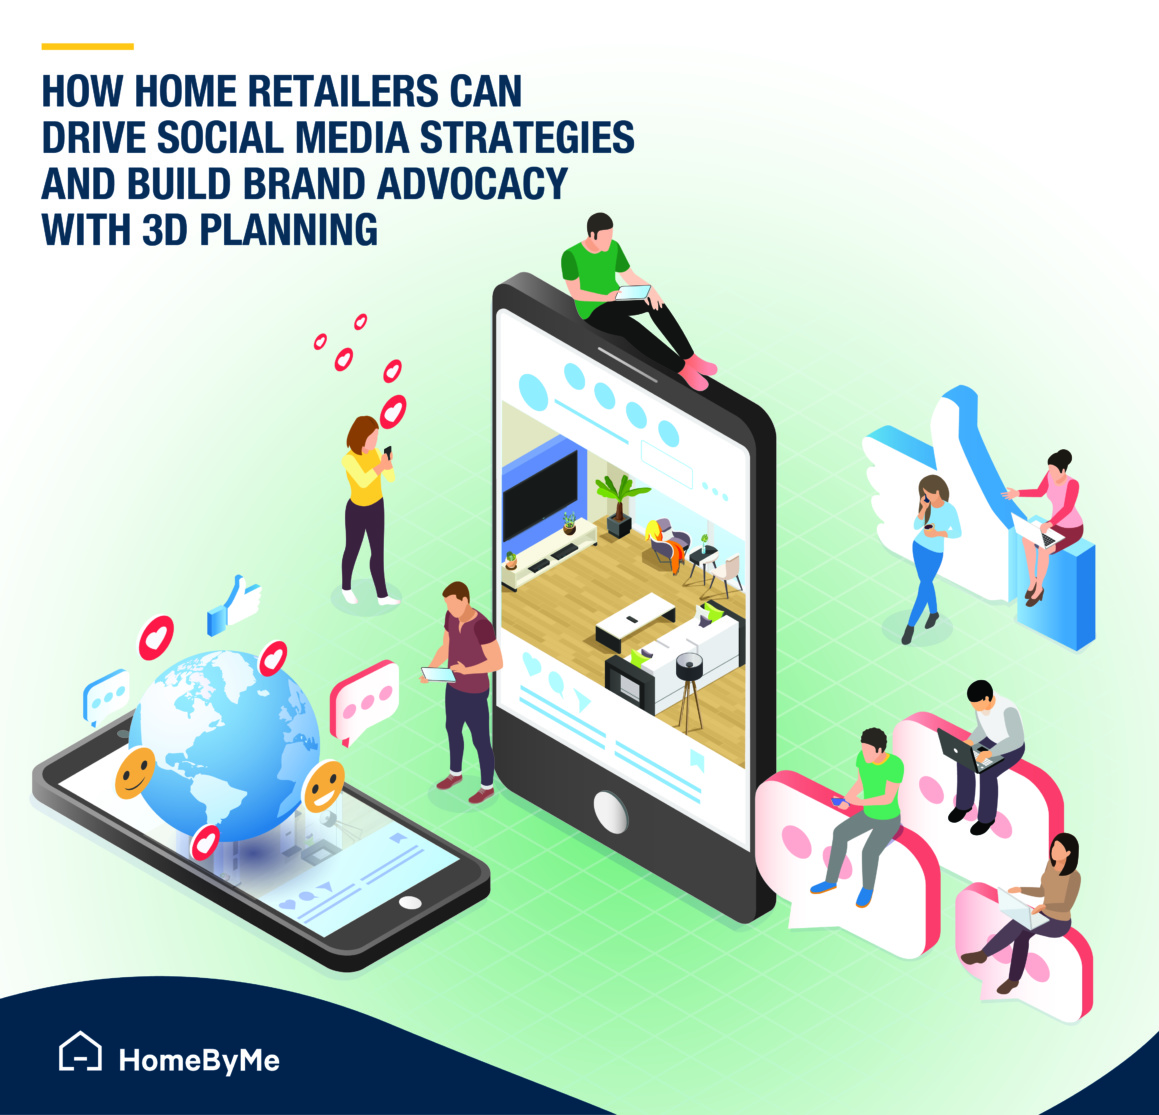 How home retailers can drive social media strategies and build brand advocacy with 3D planning